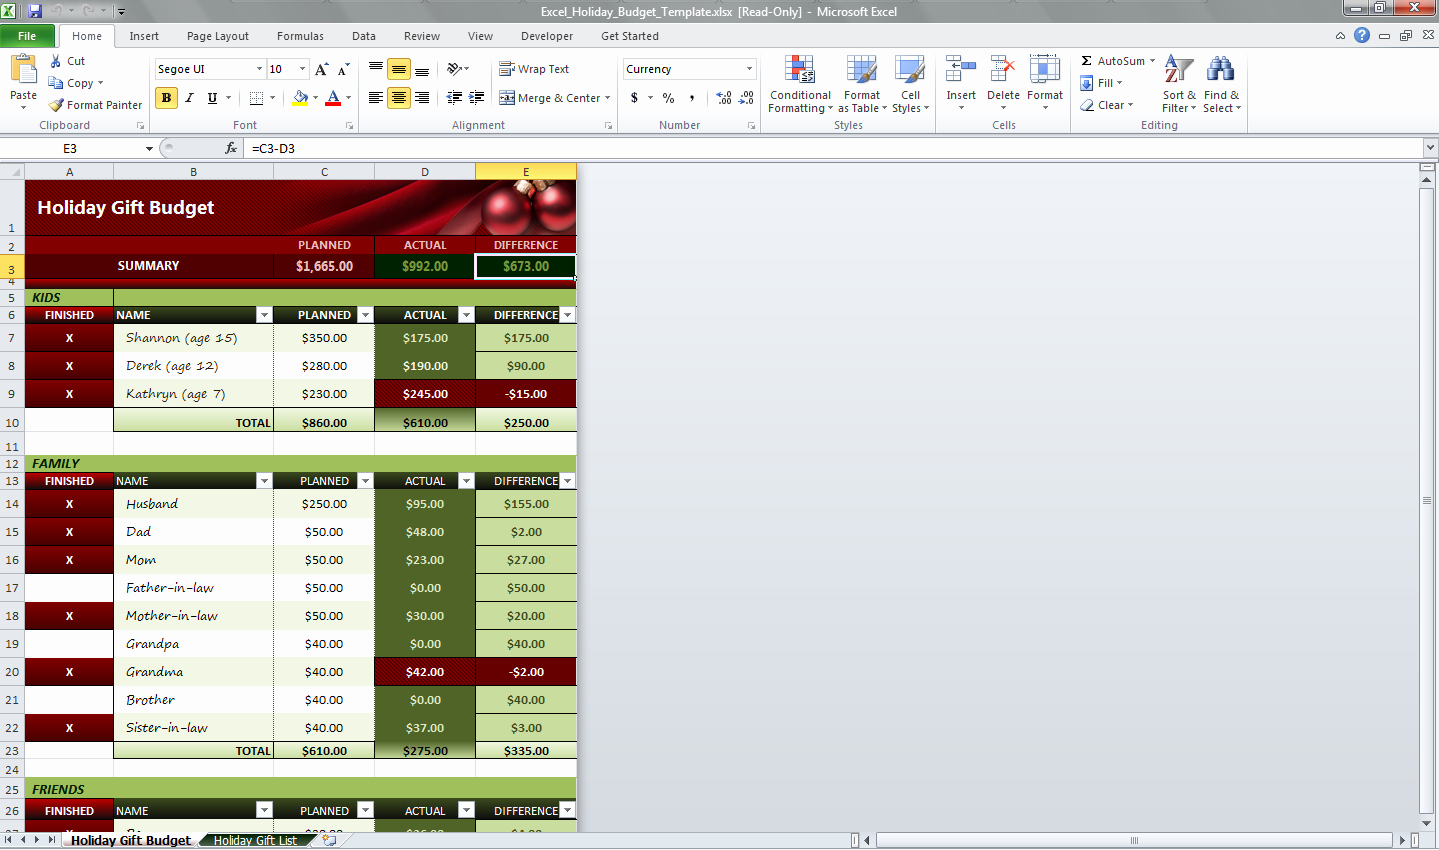 Excel Holiday Bud Template